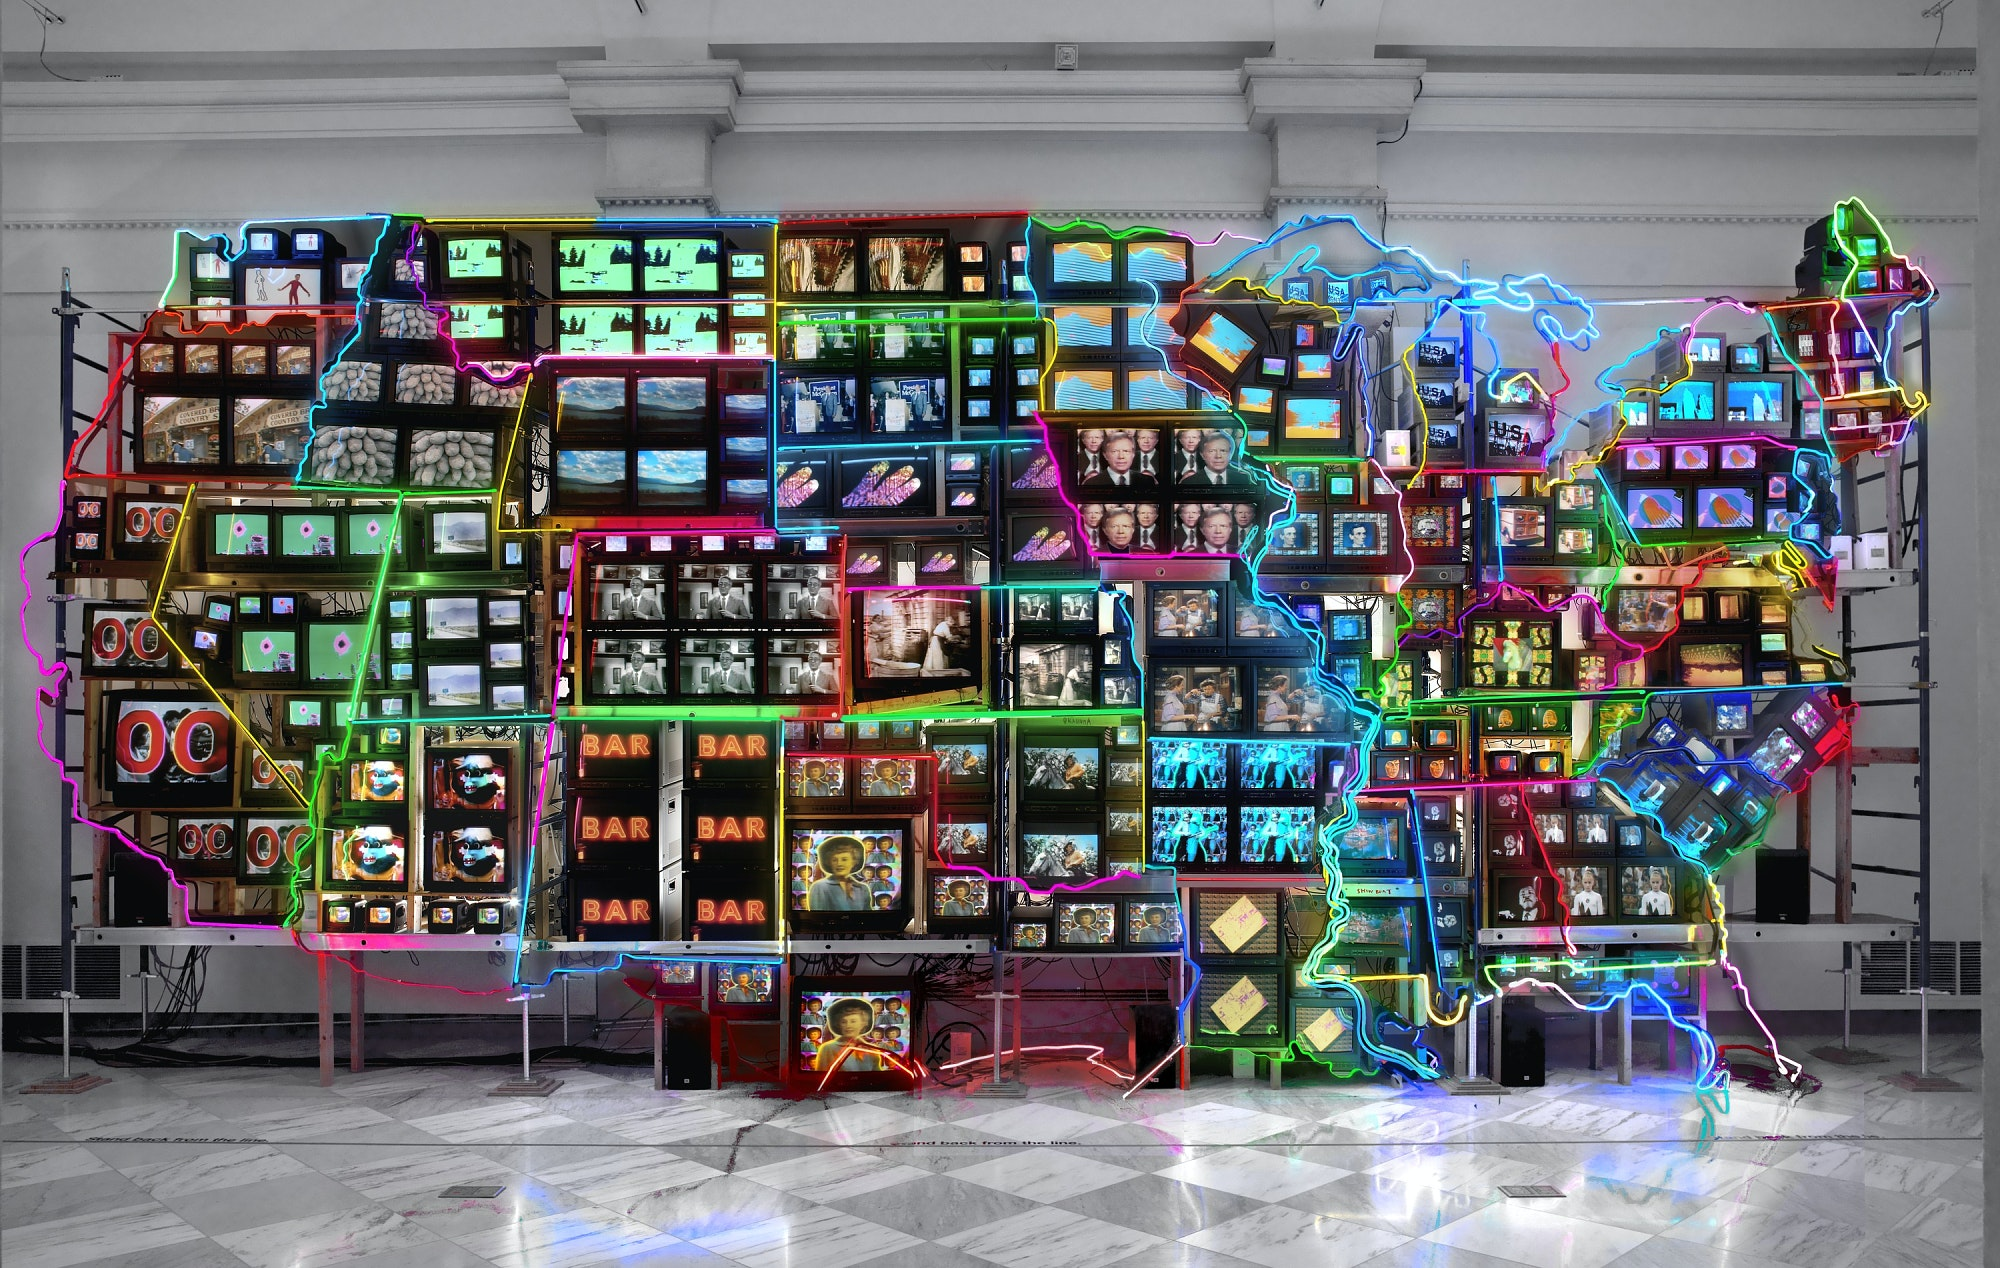 "<p><em>Nam June Paik, Electronic Superhighway: Continental U.S., Alaska, Hawaii, 1995, Smithsonian American Art Museum, © Nam June Paik Estate, Gift of the artist, 2002.23. Data Source: <a href=""https://americanart.si.edu/artwork/electronic-superhighway-continental-us-alaska-hawaii-71478"" rel=""noopener noreferrer"" target=""_blank"">Smithsonian American Art Museum</a>.</em></p>"